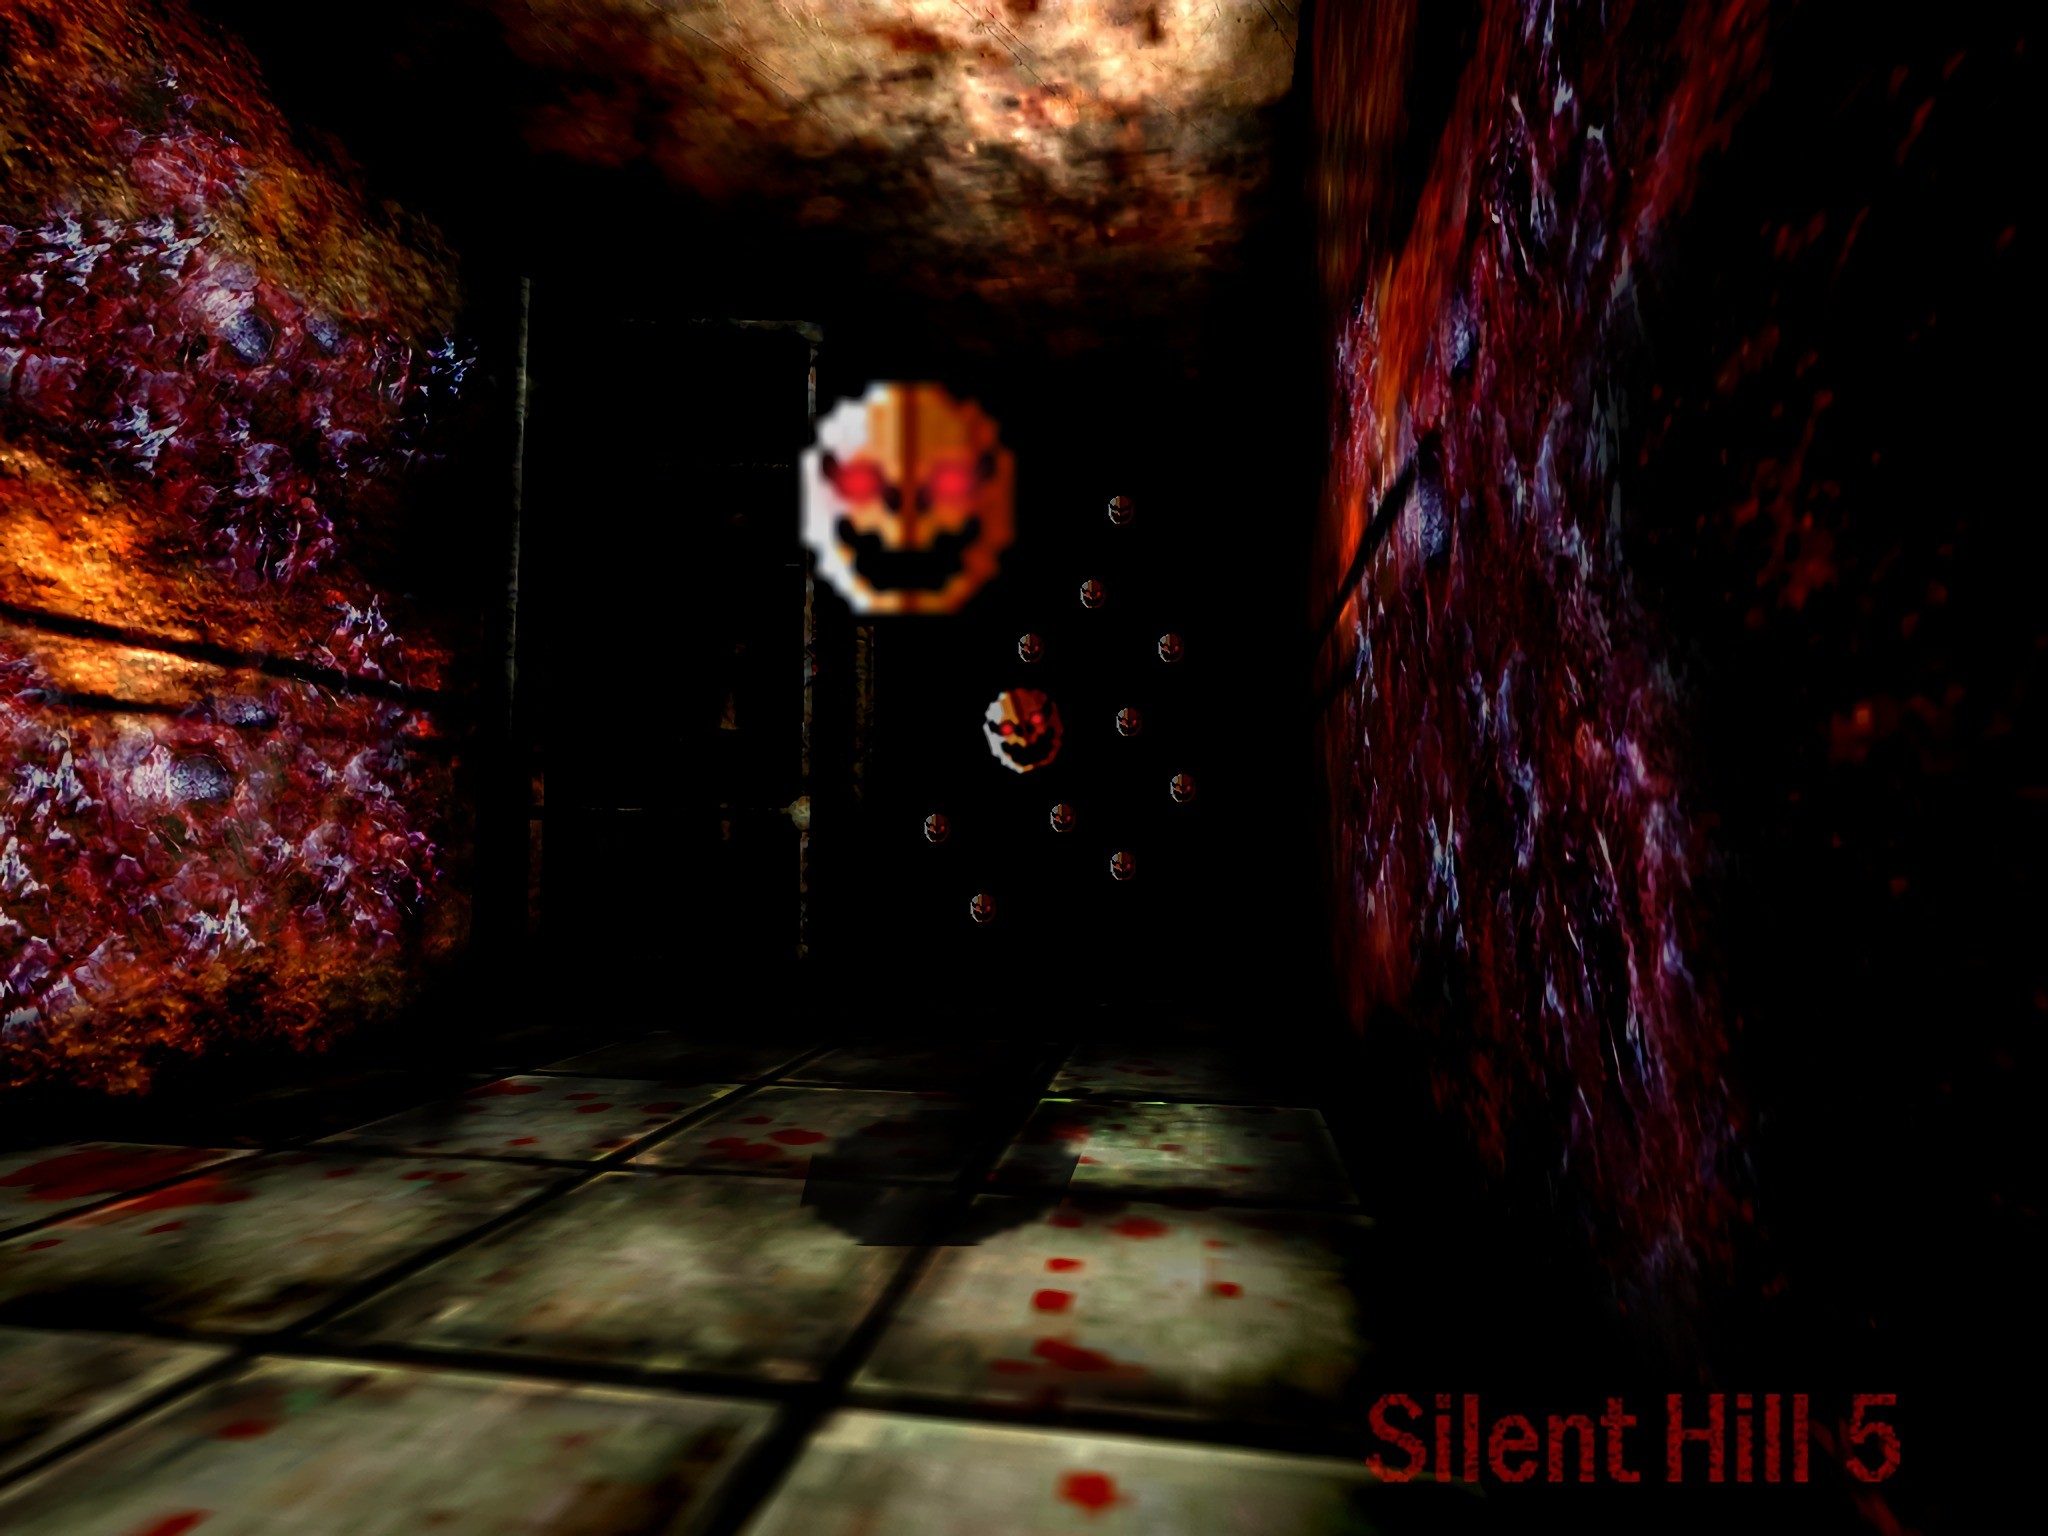 2048x1536 Video Game - Silent Hill: Homecoming Silent Hill Wallpaper